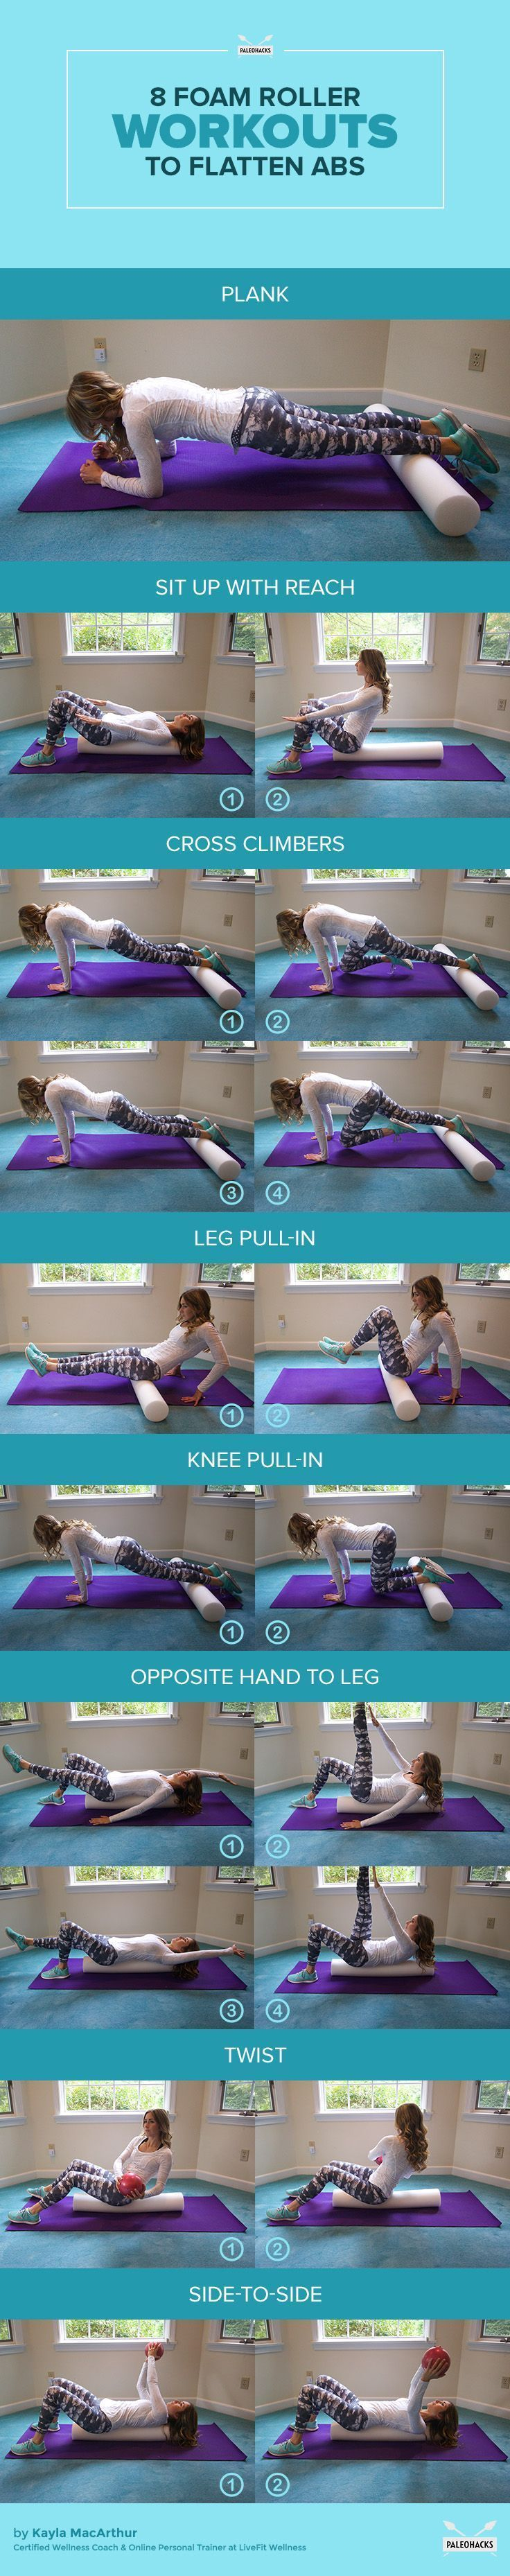 Foam Roller Workouts. Exercises for a stronger core. | Posted By:  AdvancedWeightLossTips.com | #fitness #abworkout